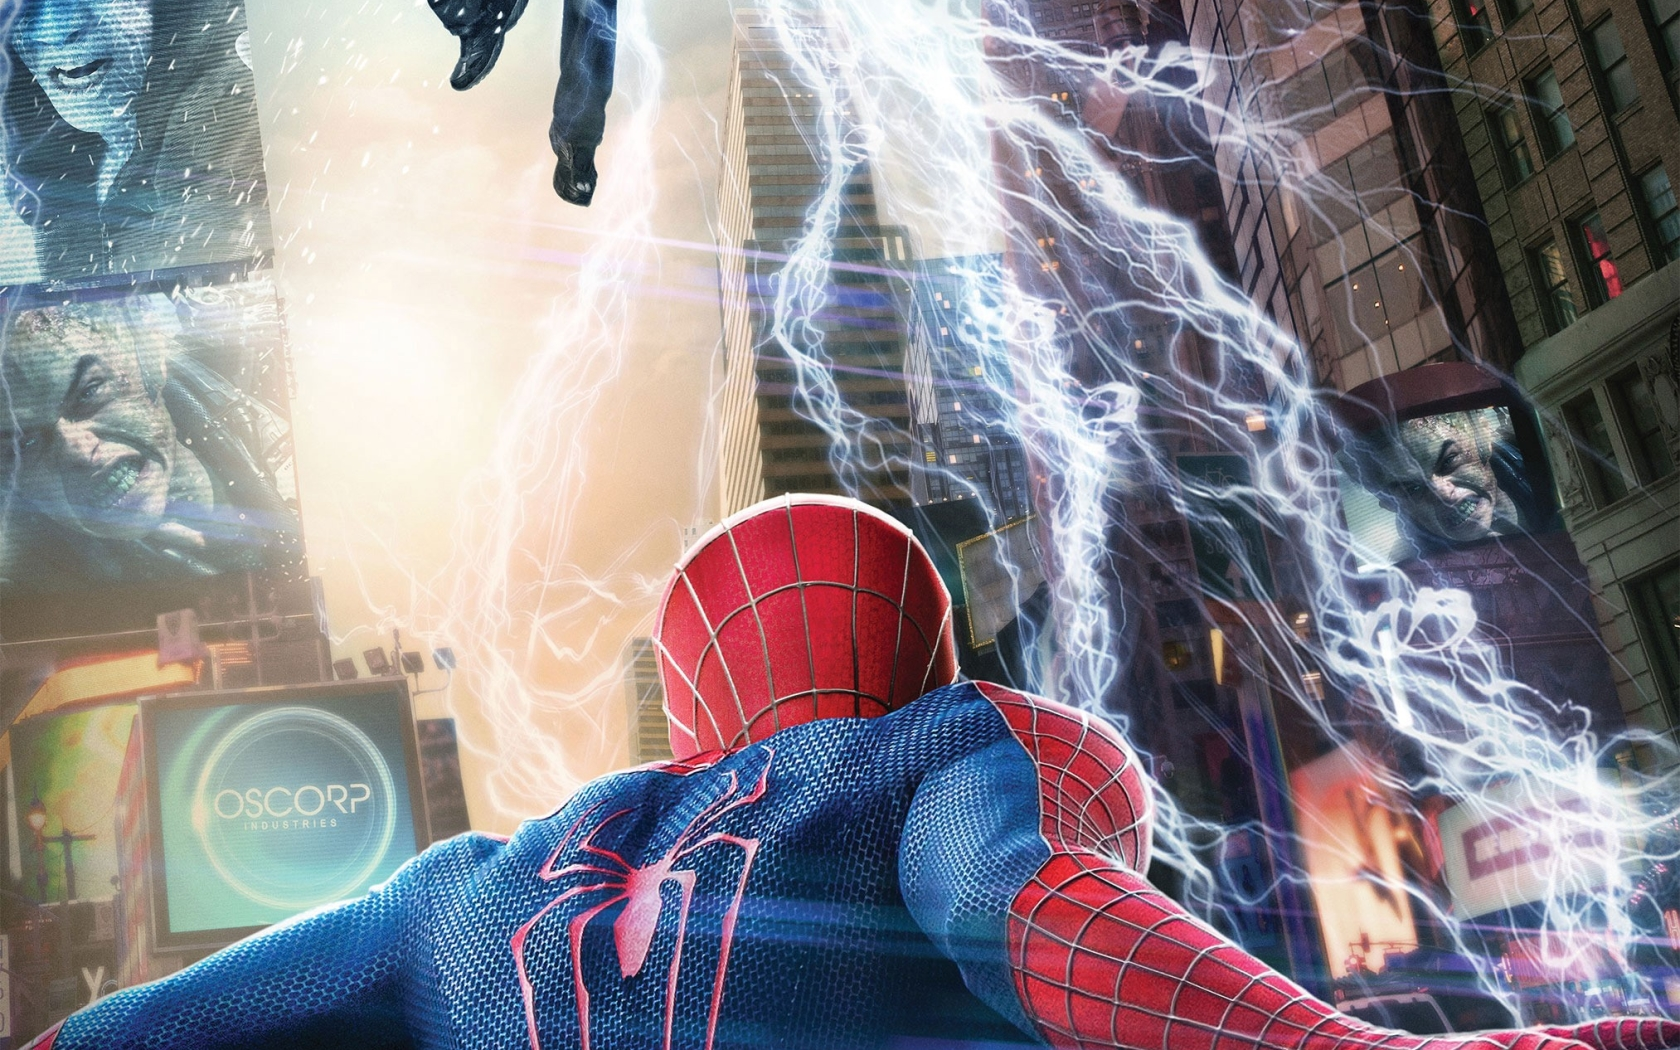 Download The Amazing Spider-man 2 Hq Photoshoot 1680x1050